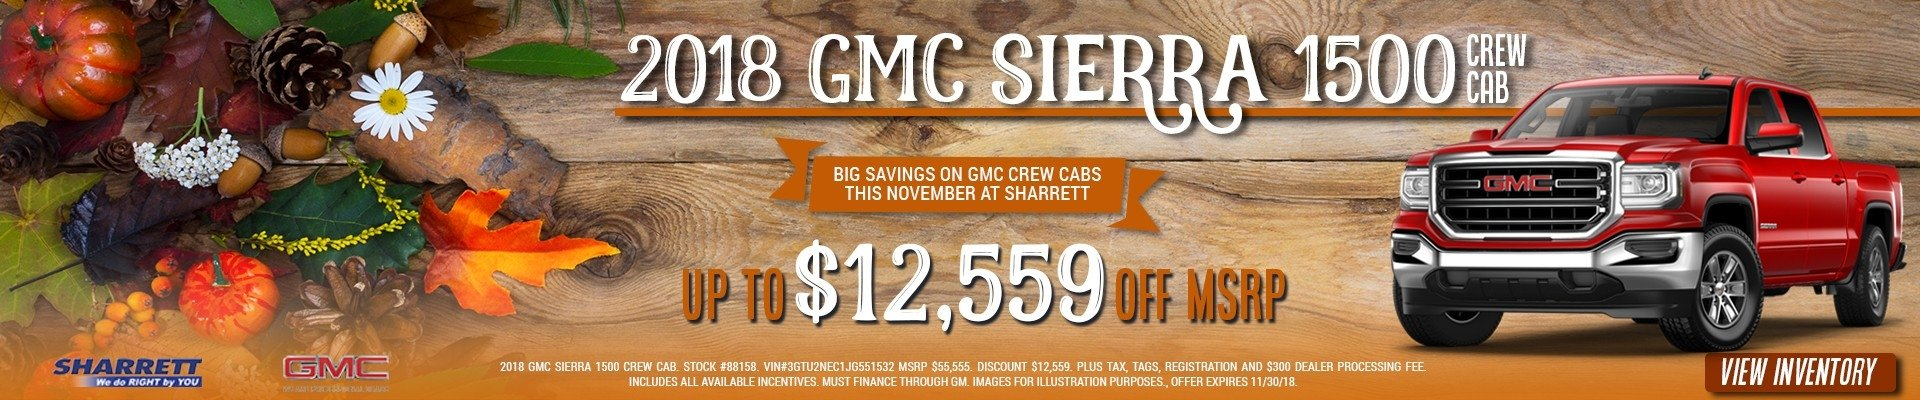 Get up to $12,559 off a new 2018 GMC Sierra 1500 Crew Cab at Sharrett Buick GMC